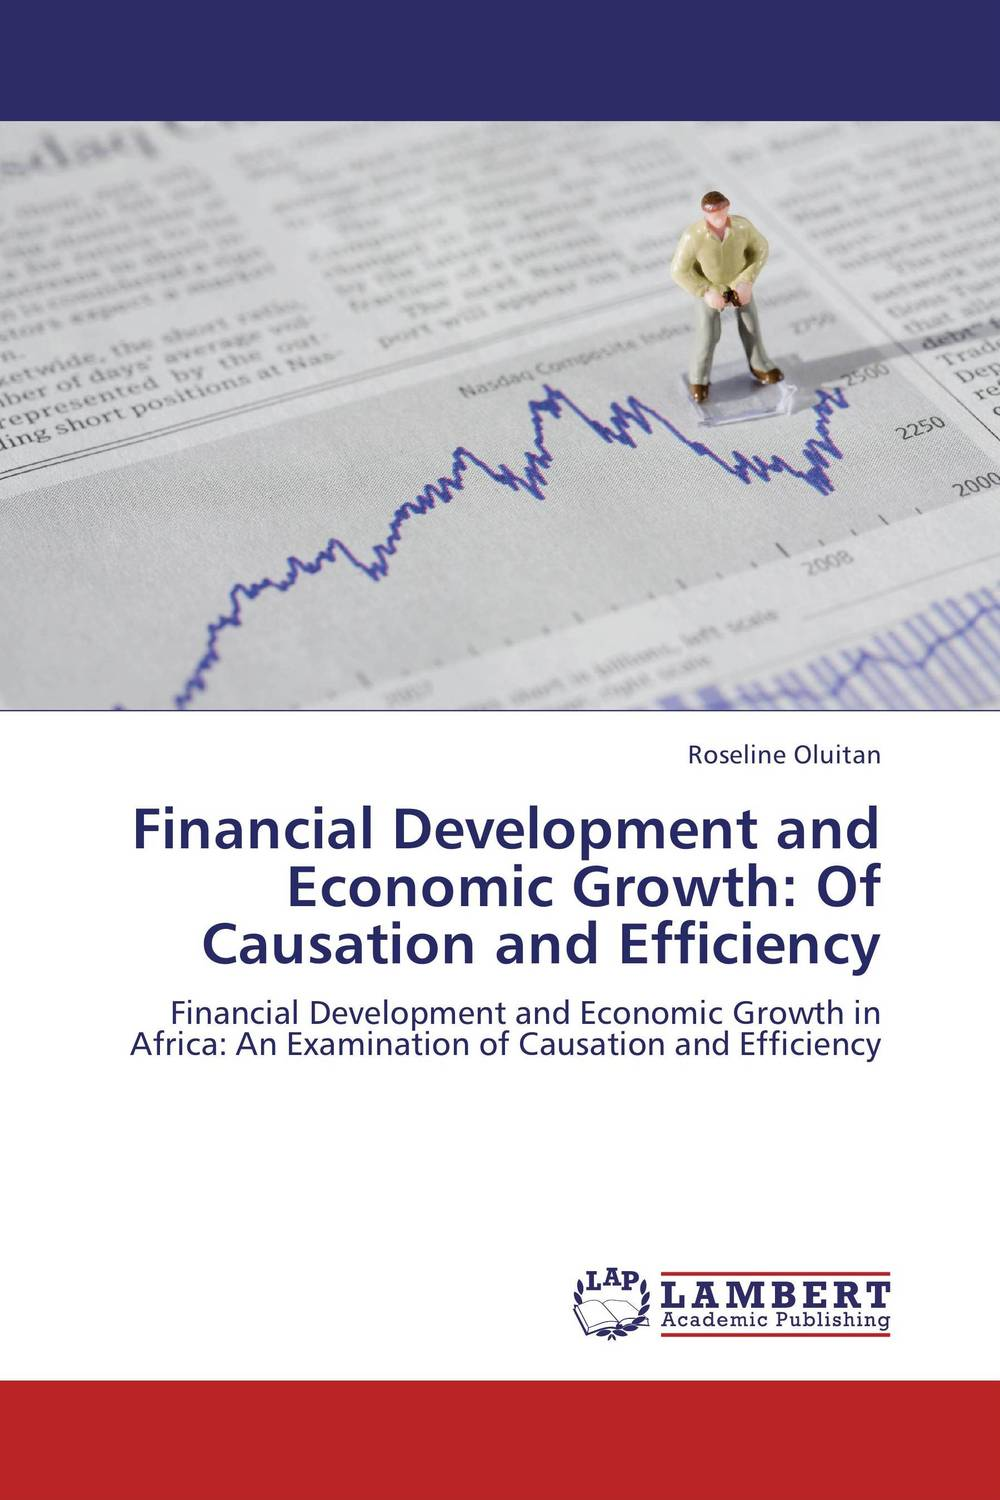 Financial Development and Economic Growth: Of Causation and Efficiency wu xiaoqiu chinese securities companies an analysis of economic growth financial structure transformation and future development